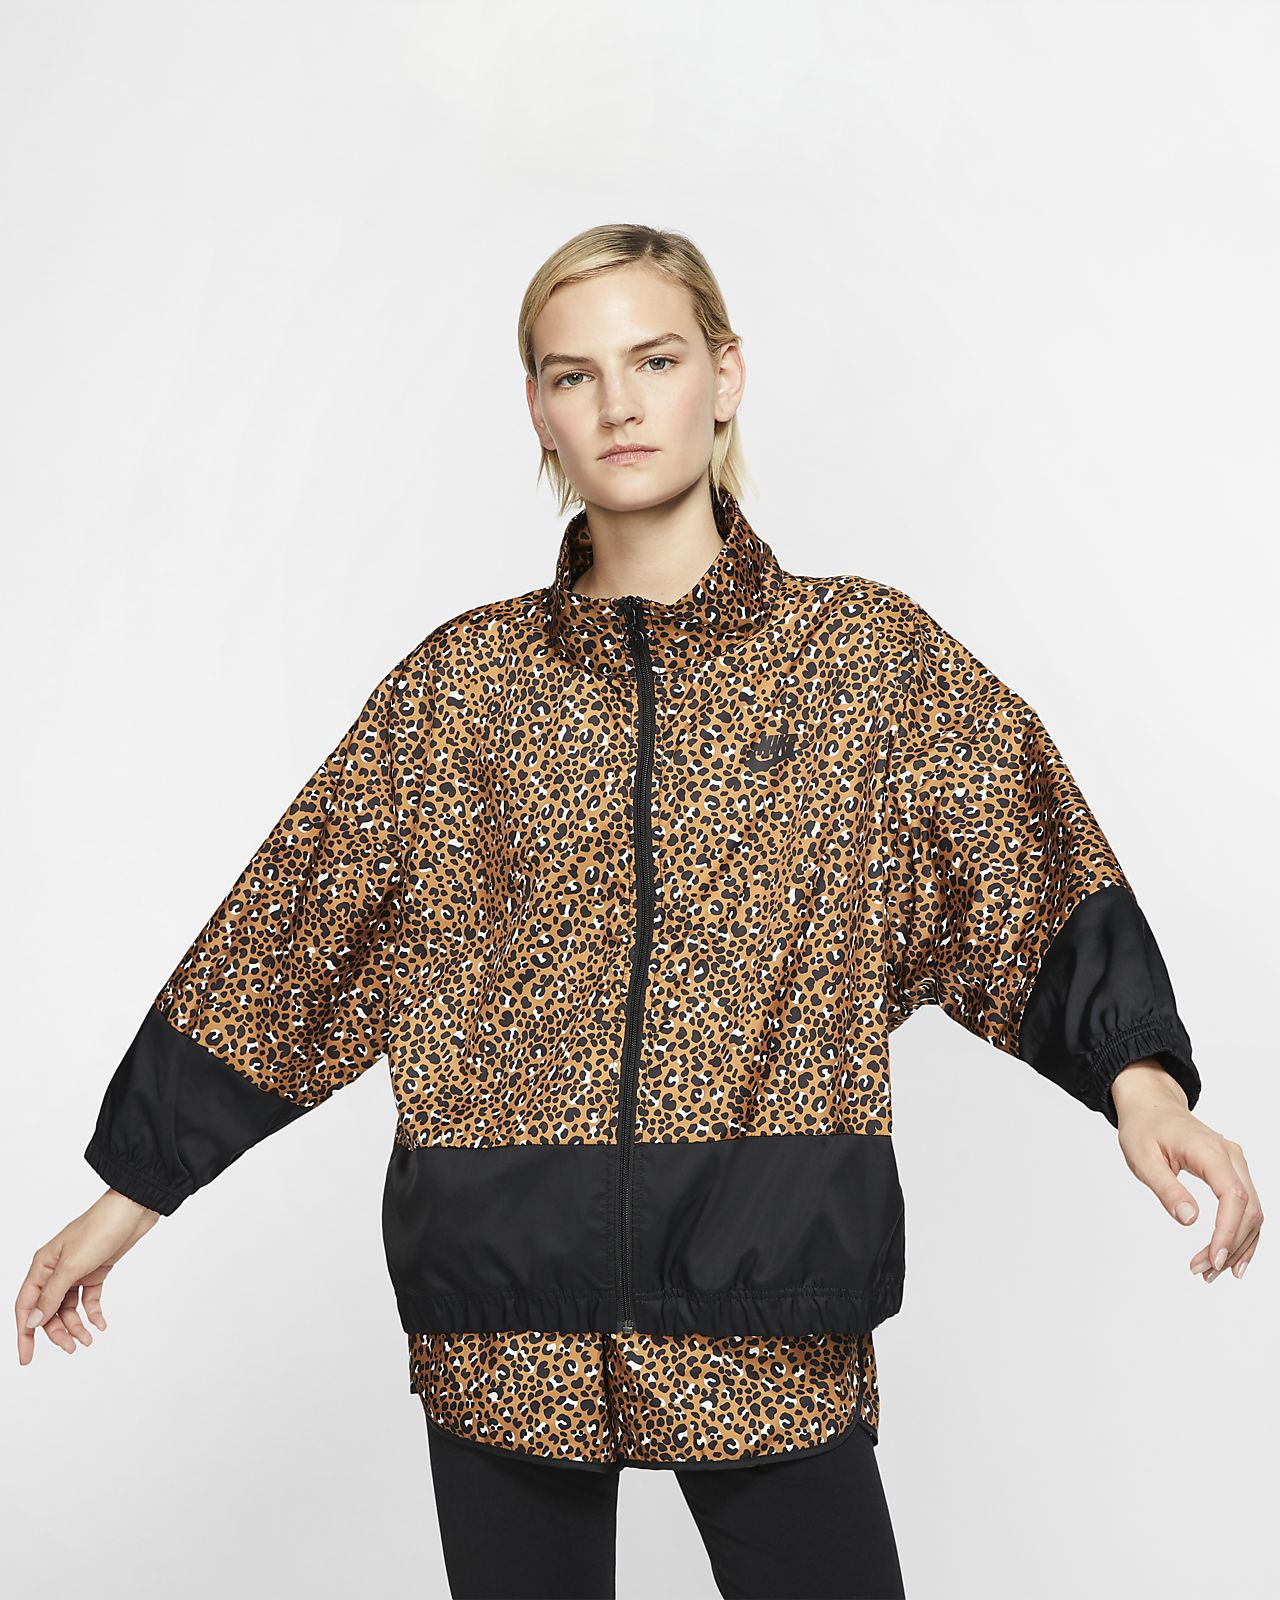 43c09912 Nike Sportswear Animal Print Woven Jacket. Nike.com GB